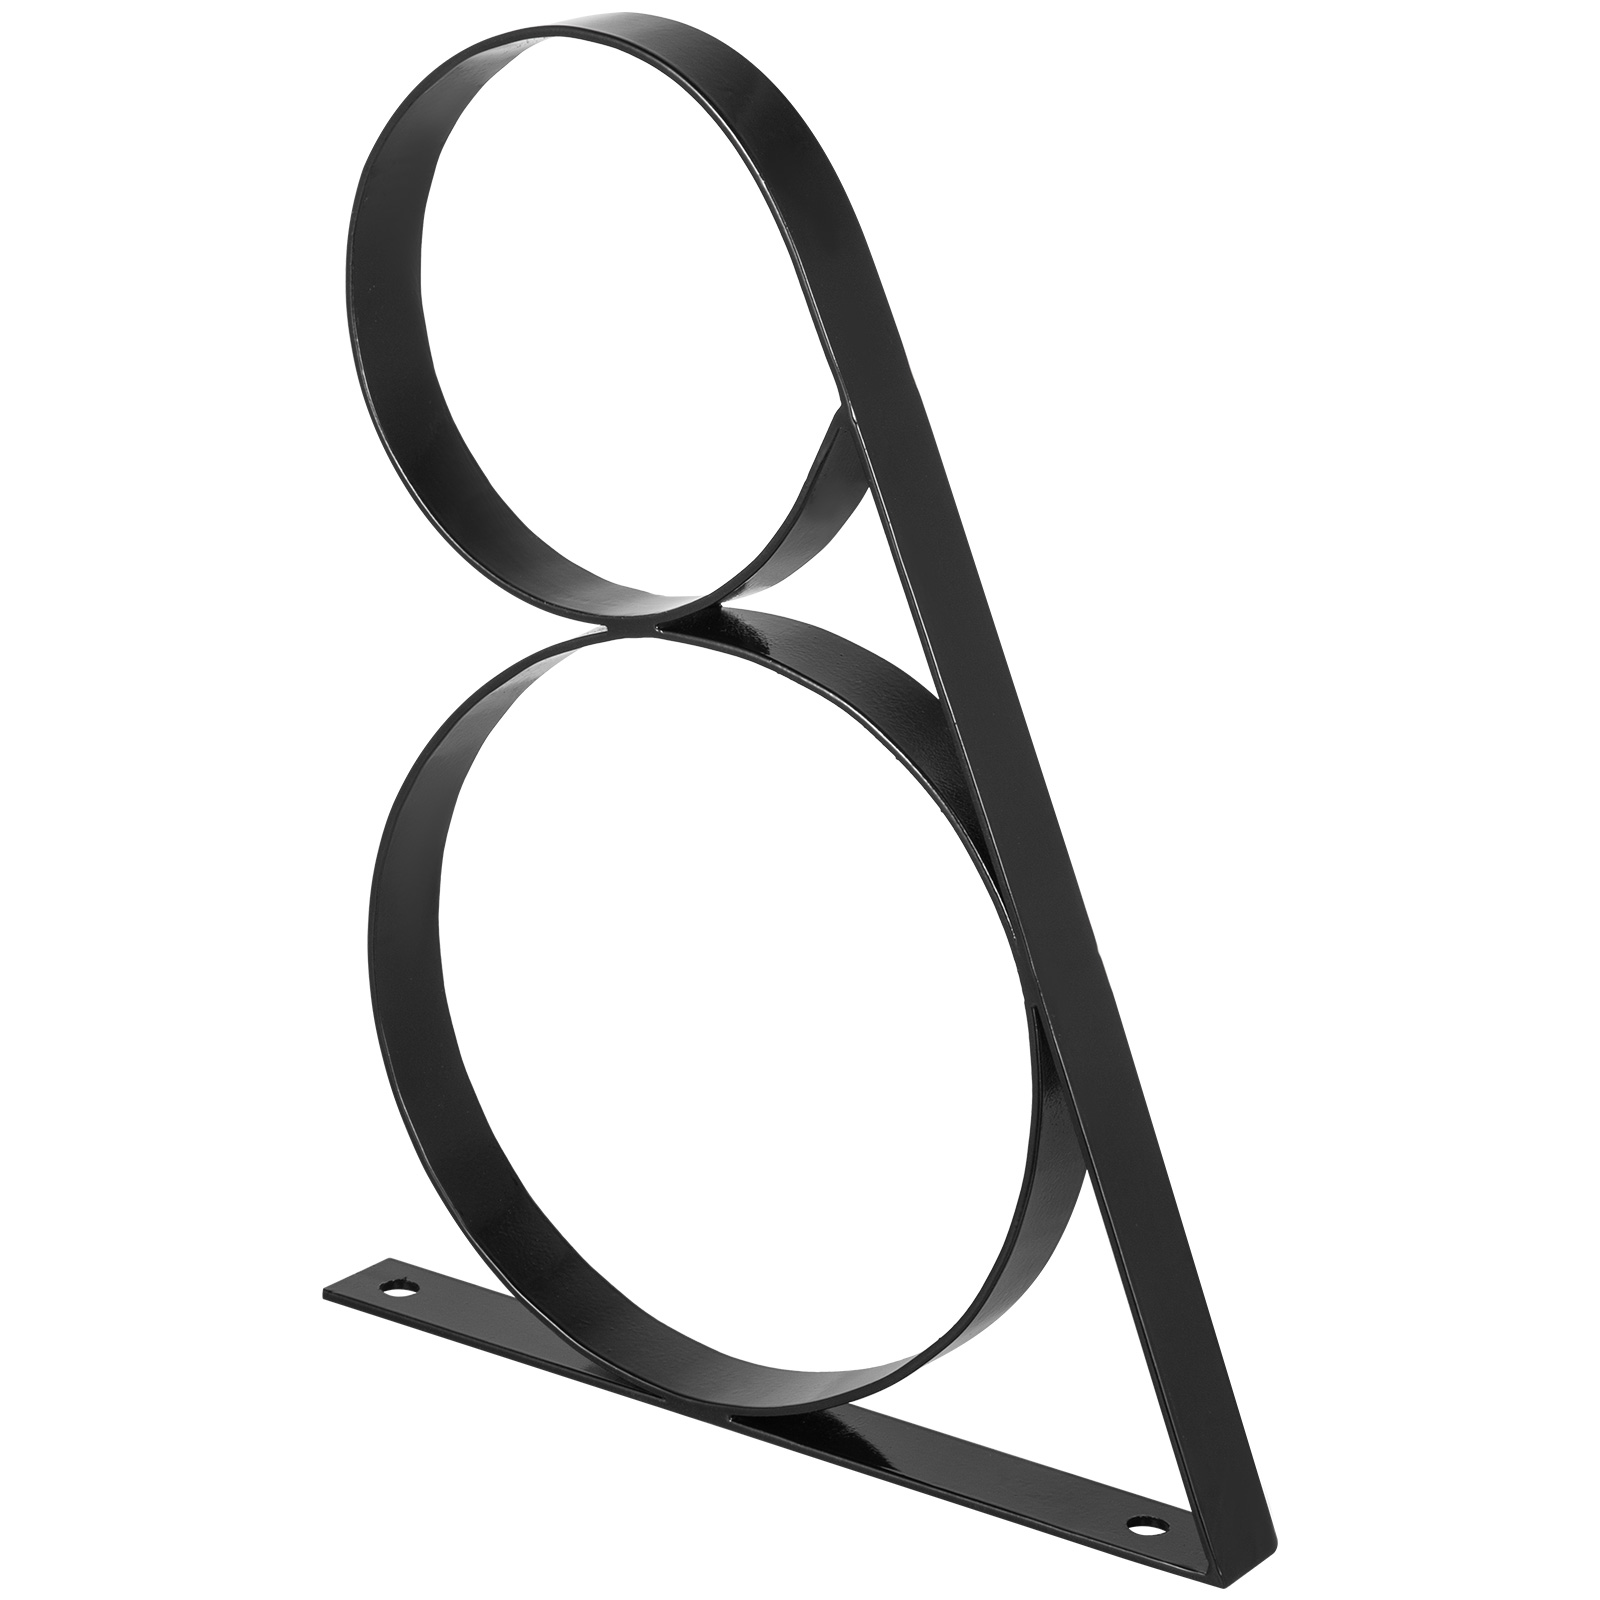 Handrails-for-Outdoor-Step-Wrought-Iron-Handrail-20-034-Length-Porch-Deck-Railing thumbnail 35